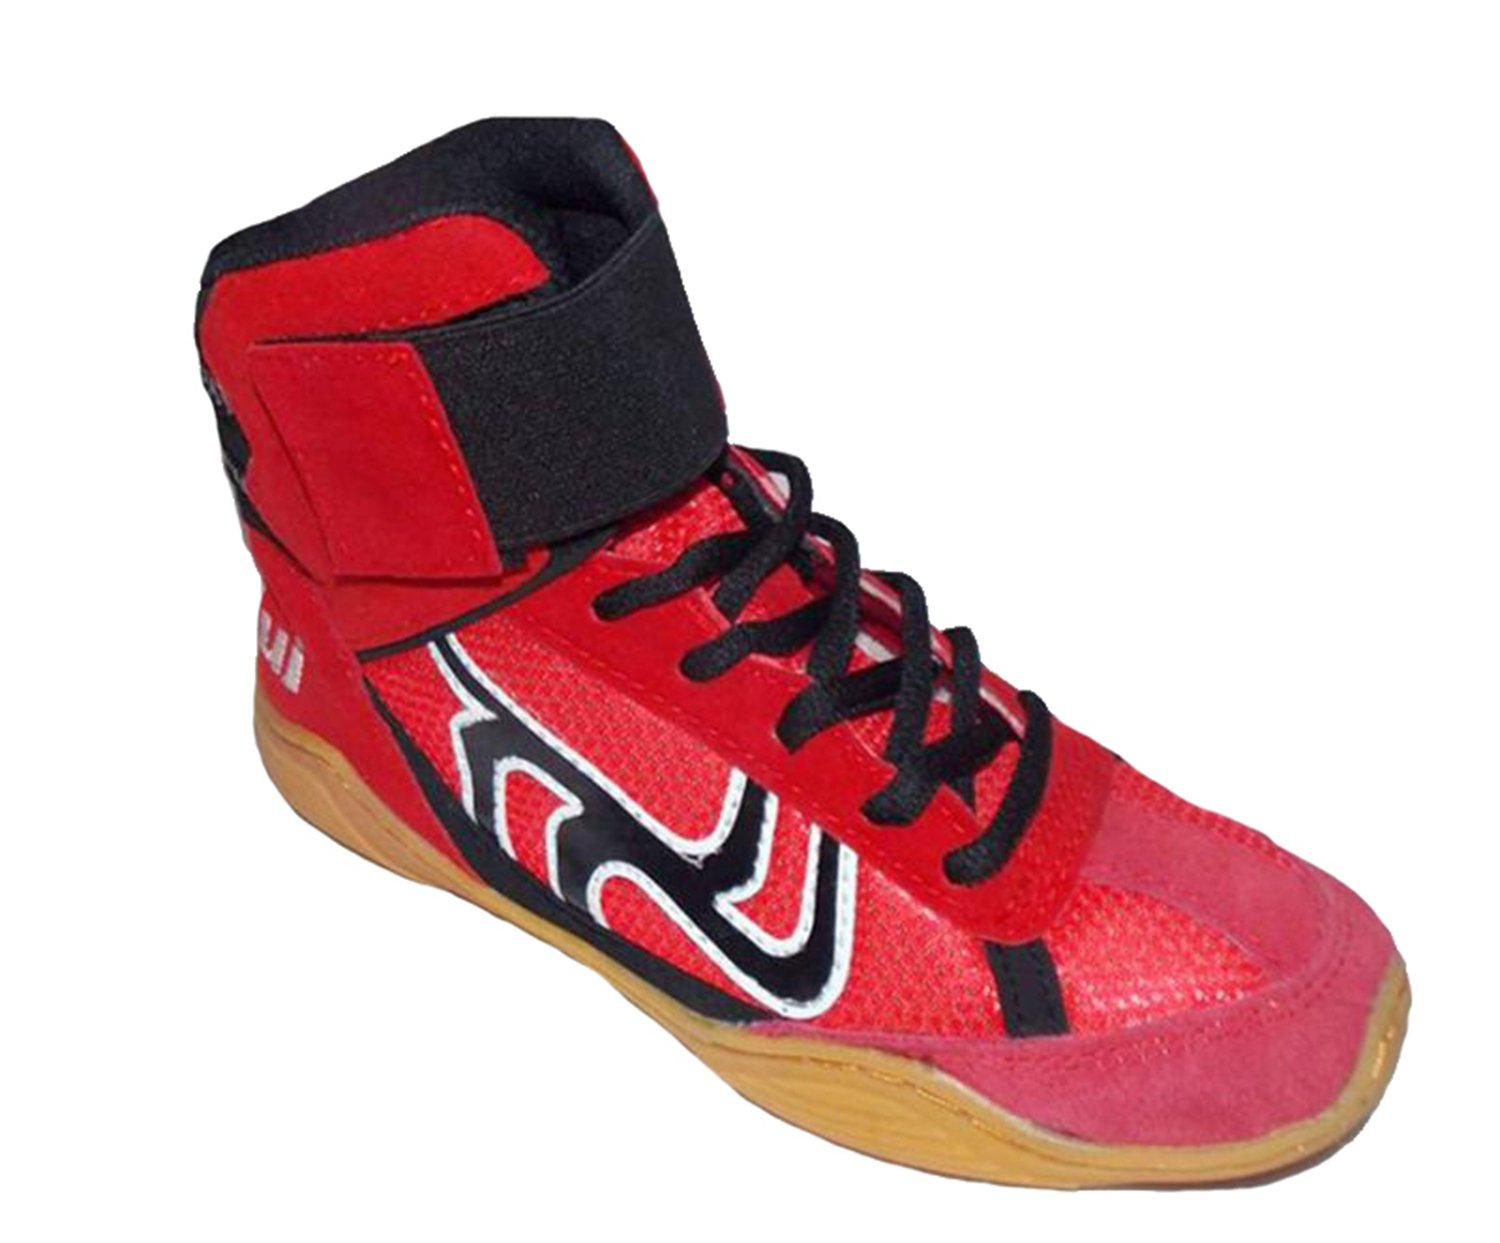 Wrestling Shoes Boxing Boots Rubber Sole Combat Training Shoes for Men&Women&Children Kids B07DB5FVDP 6.5 D(M) US|Red-black Shoe Lace